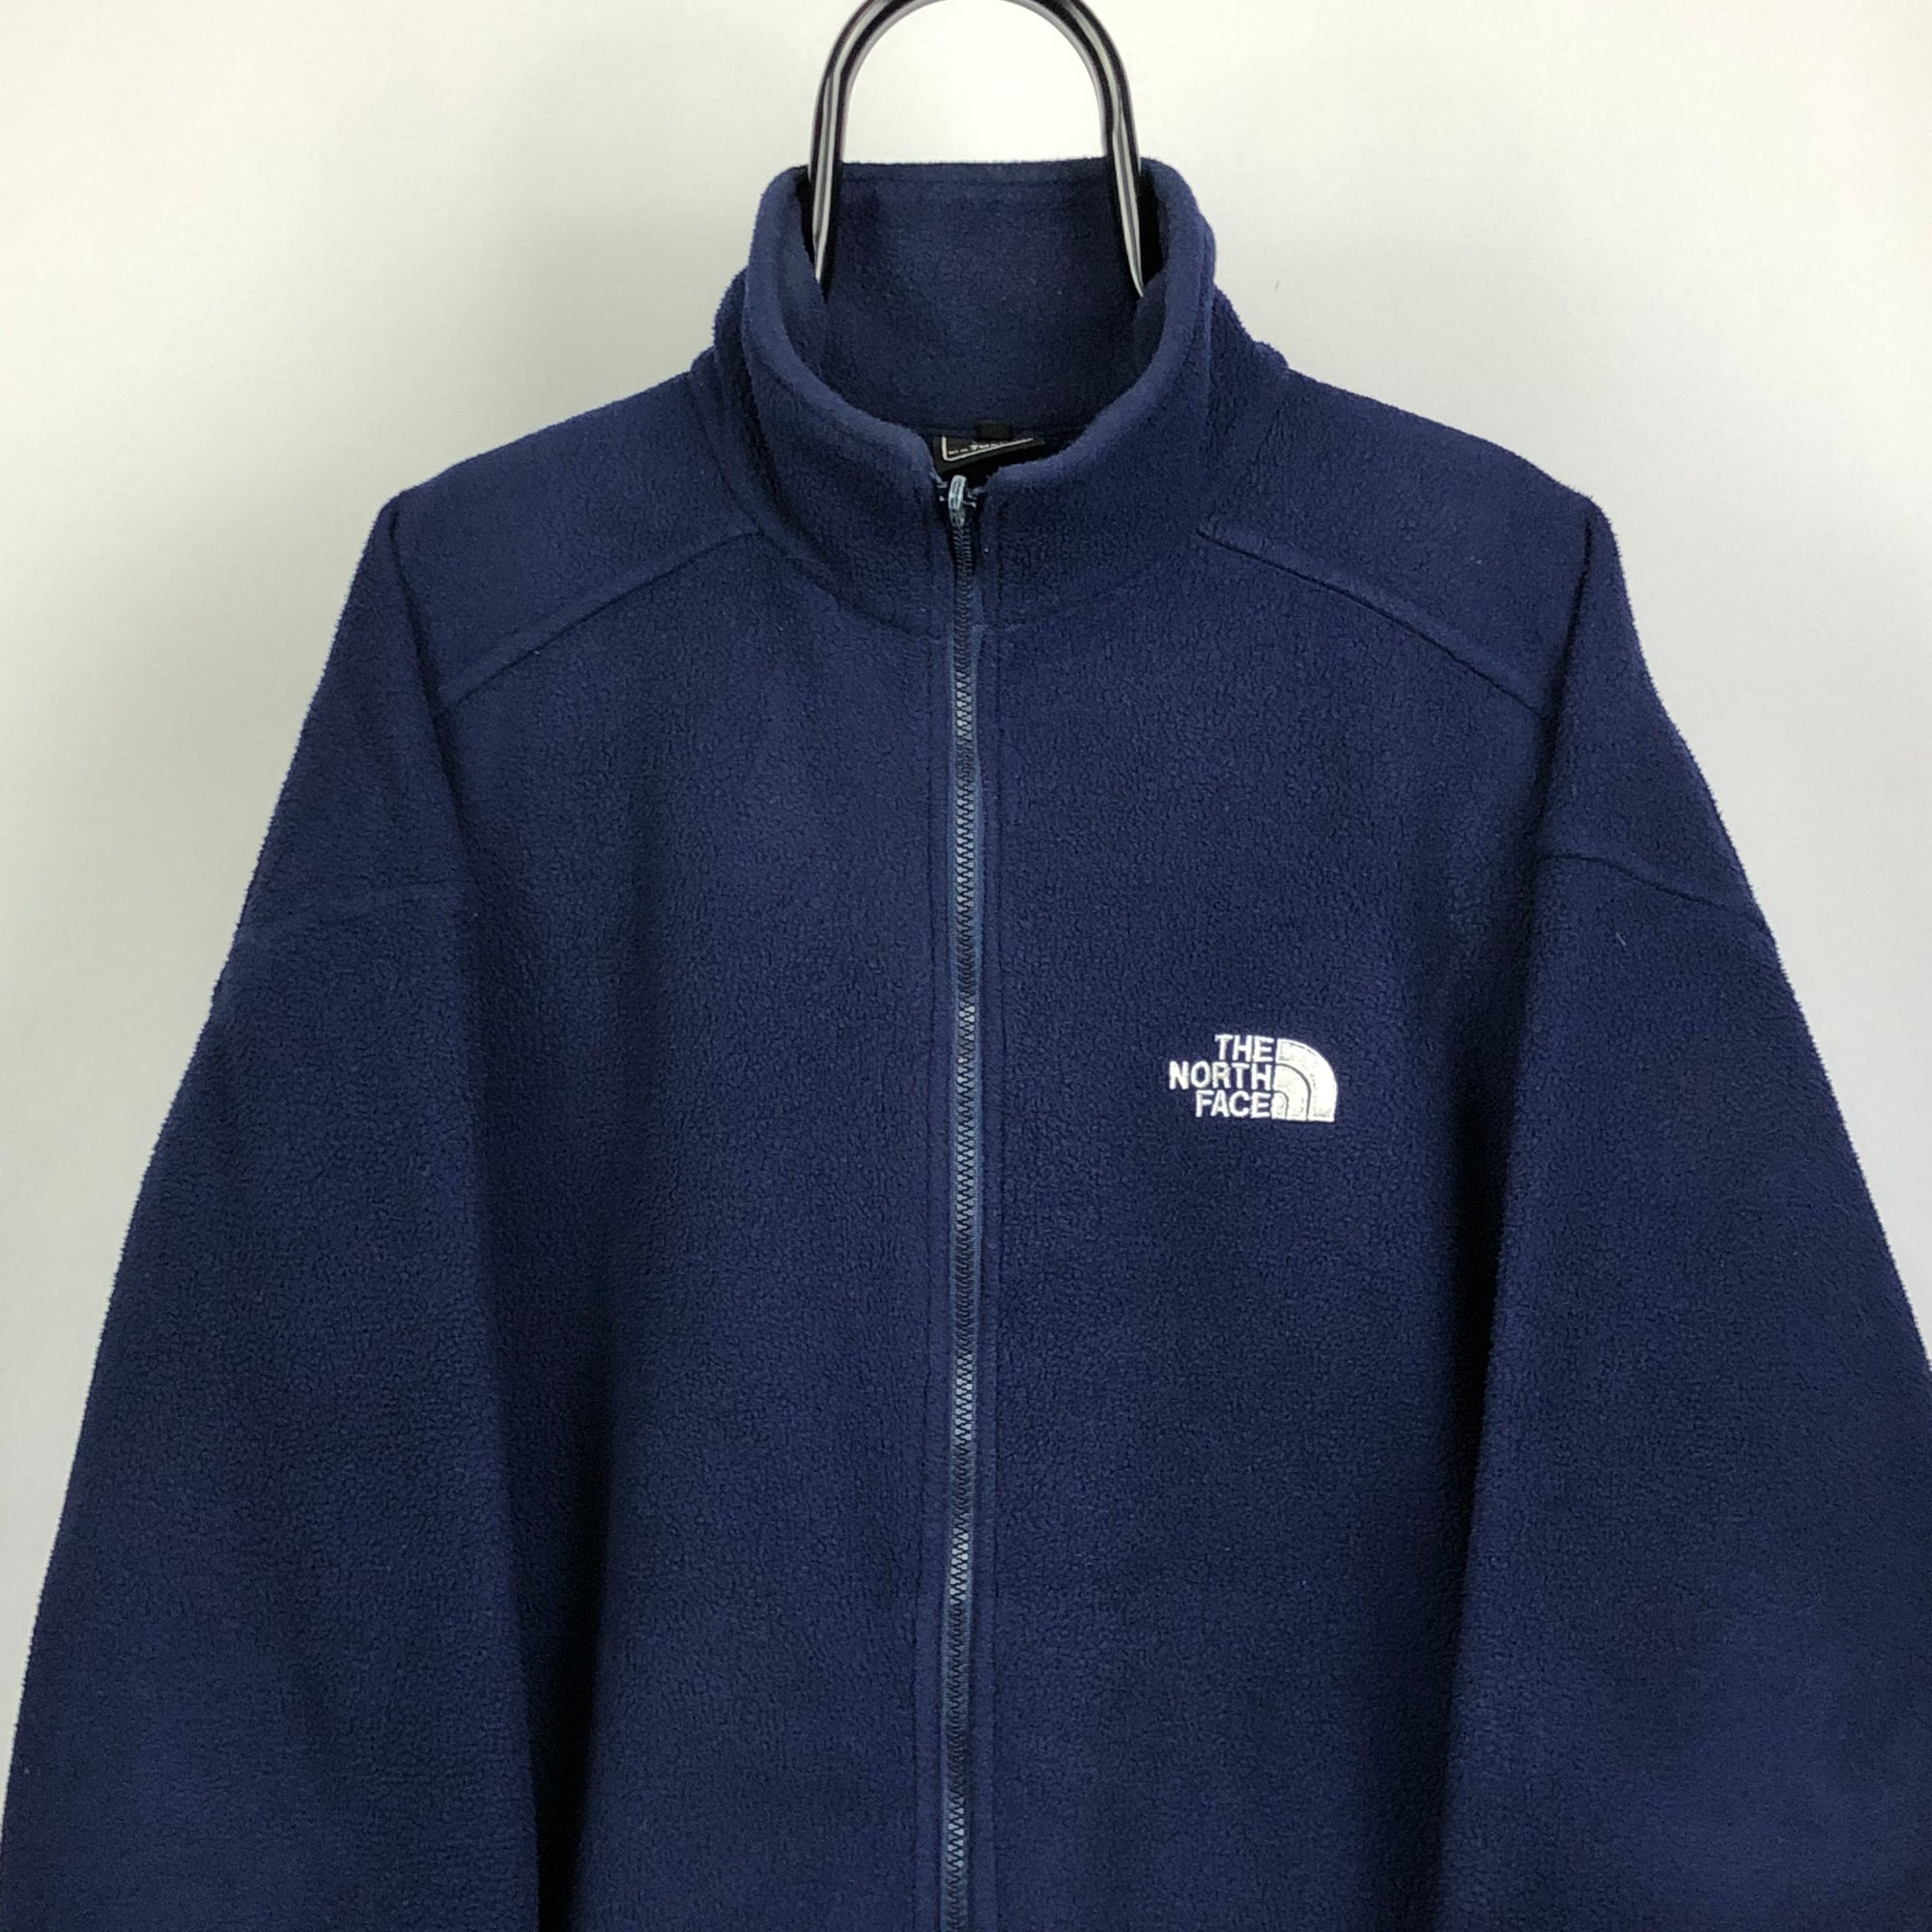 North Face Fleece in Navy - Men's XL/Women's XXL